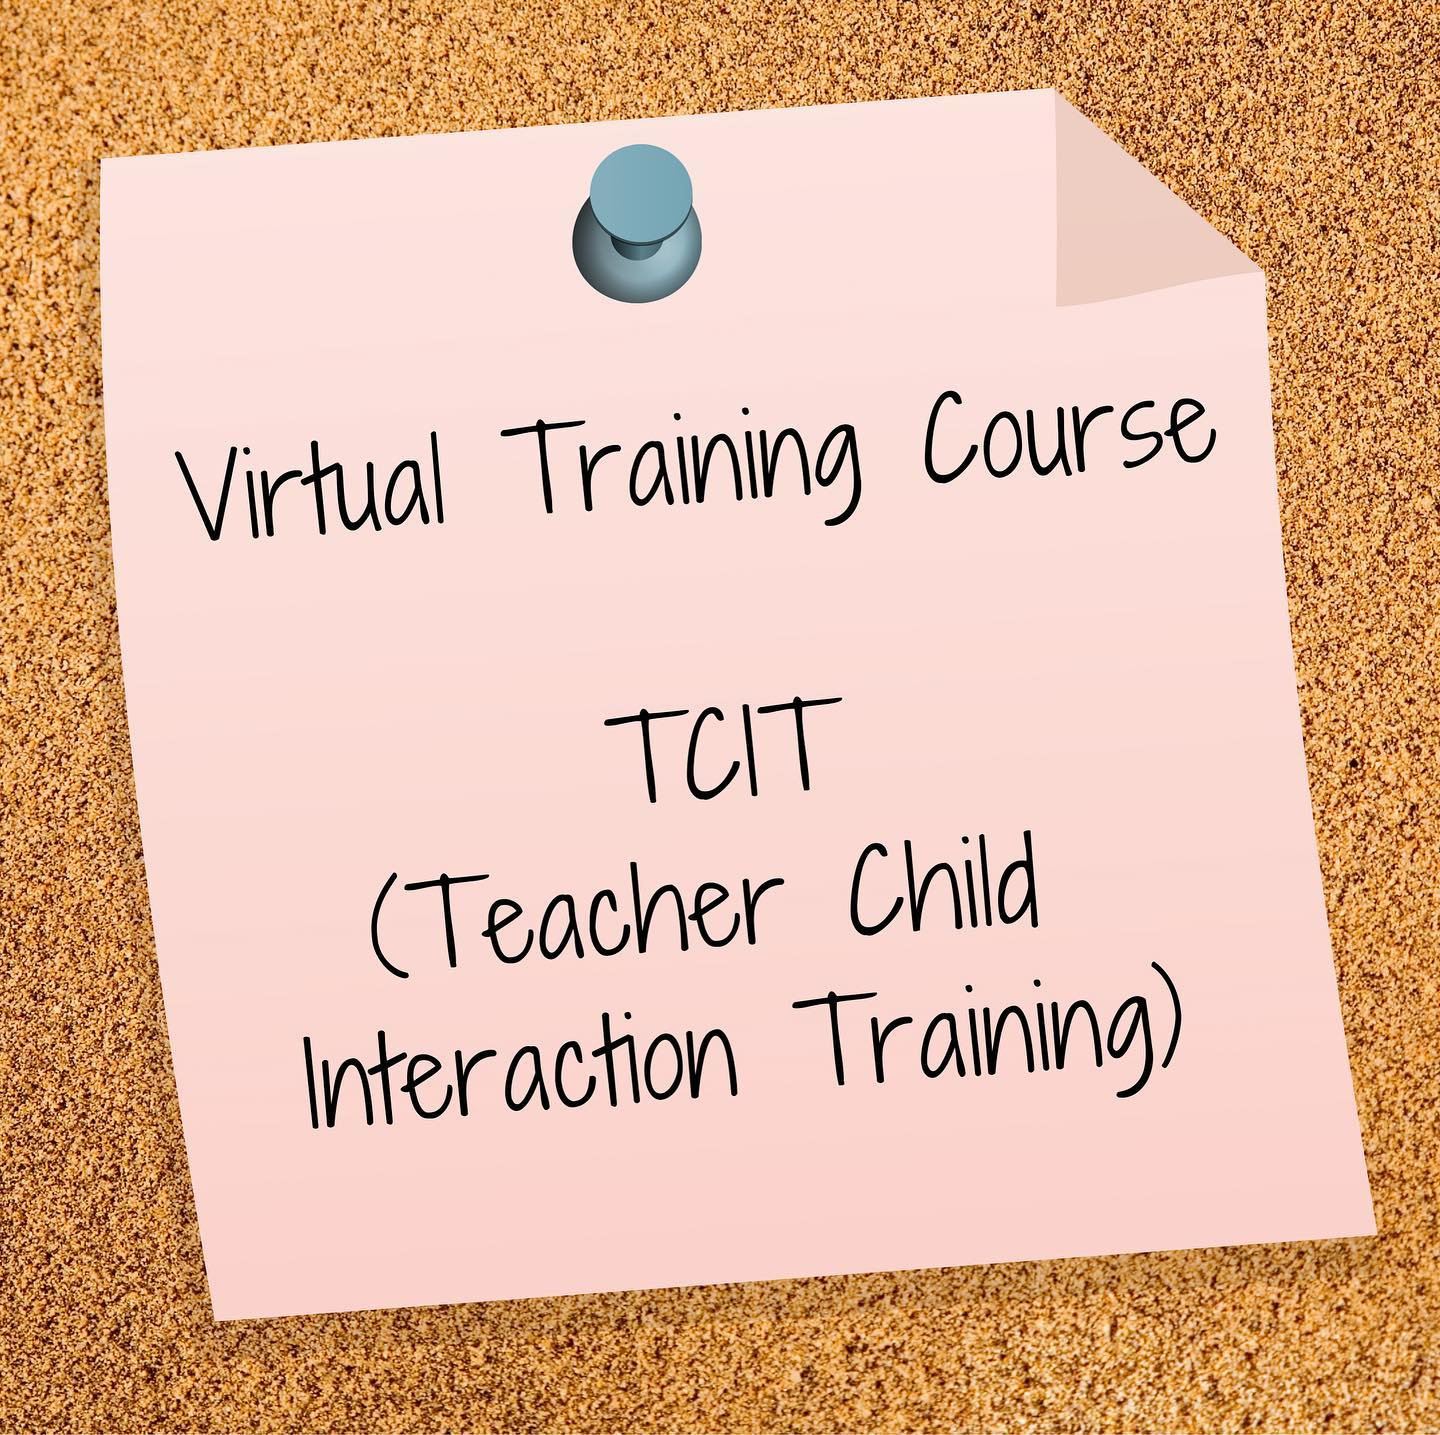 Virtual Training Course - Teacher Child Interaction Training (TCIT)